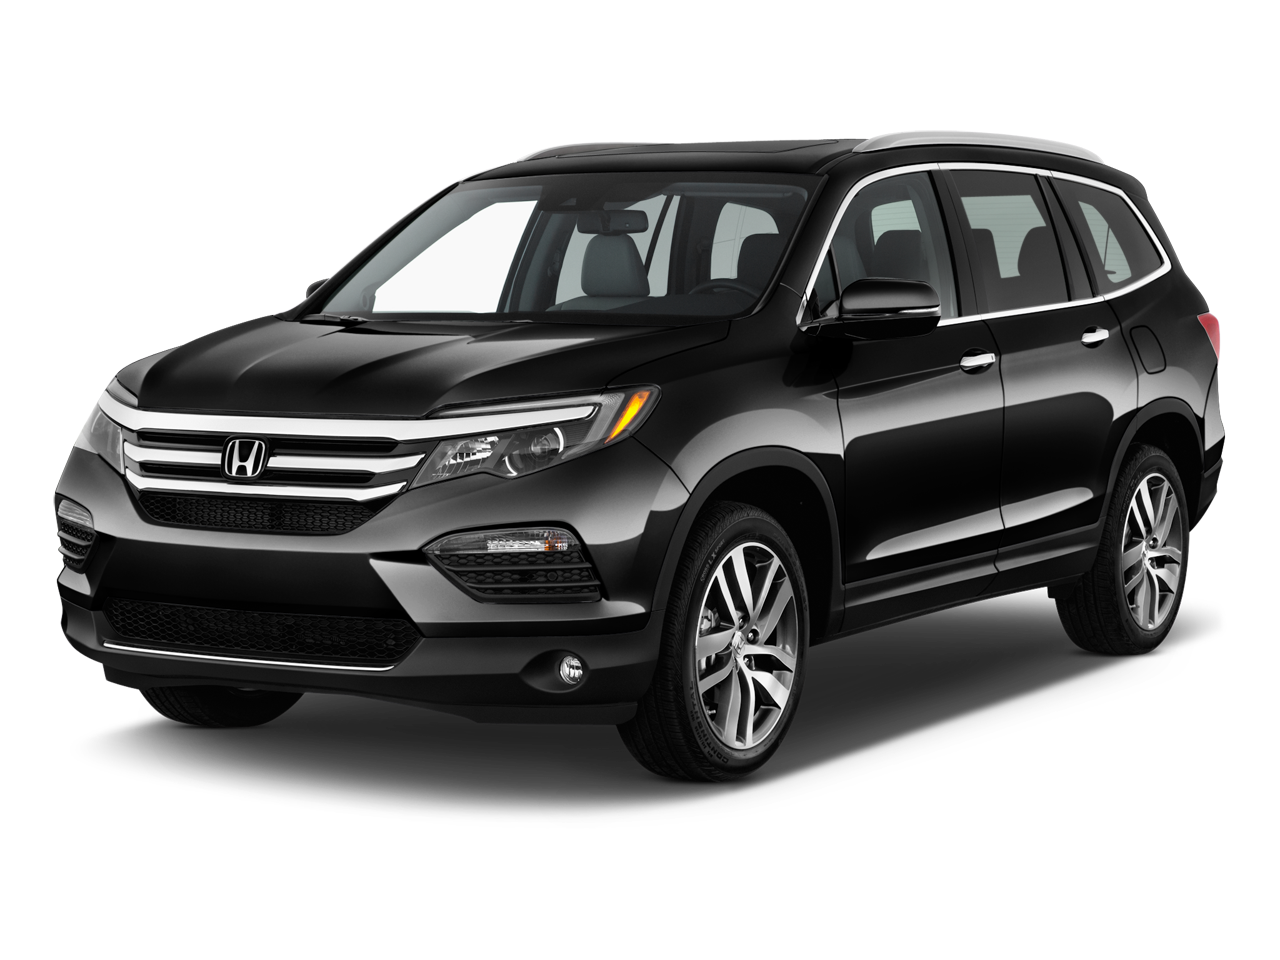 New 2017 honda pilot touring near union nj planet for 2017 honda pilot features